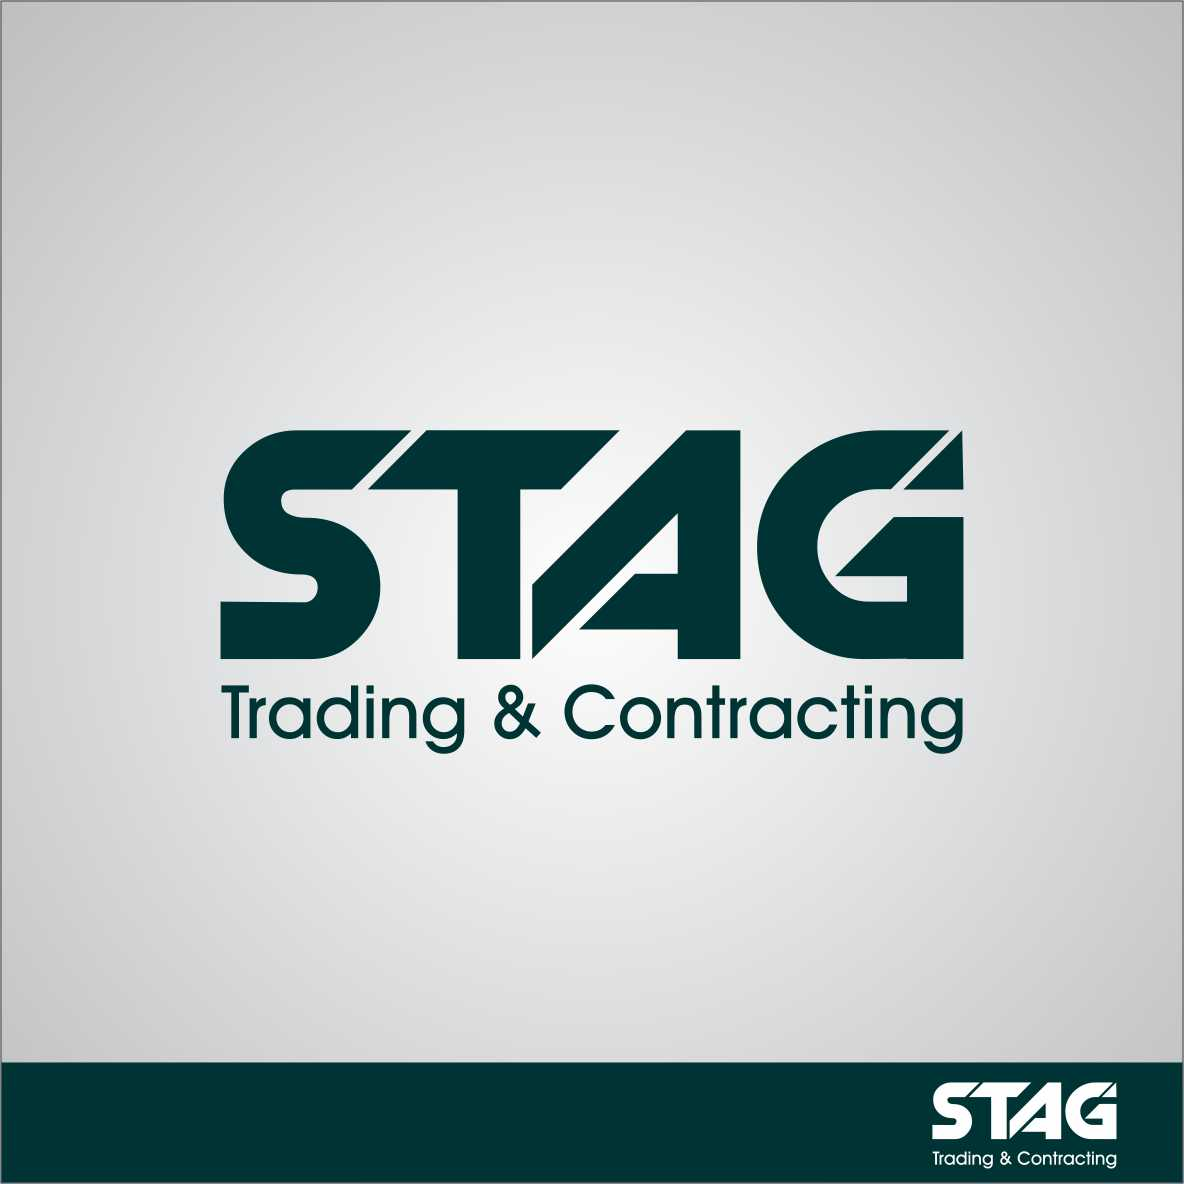 Logo Design by arteo_design - Entry No. 55 in the Logo Design Contest Captivating Logo Design for STAG Trading & Contracting.